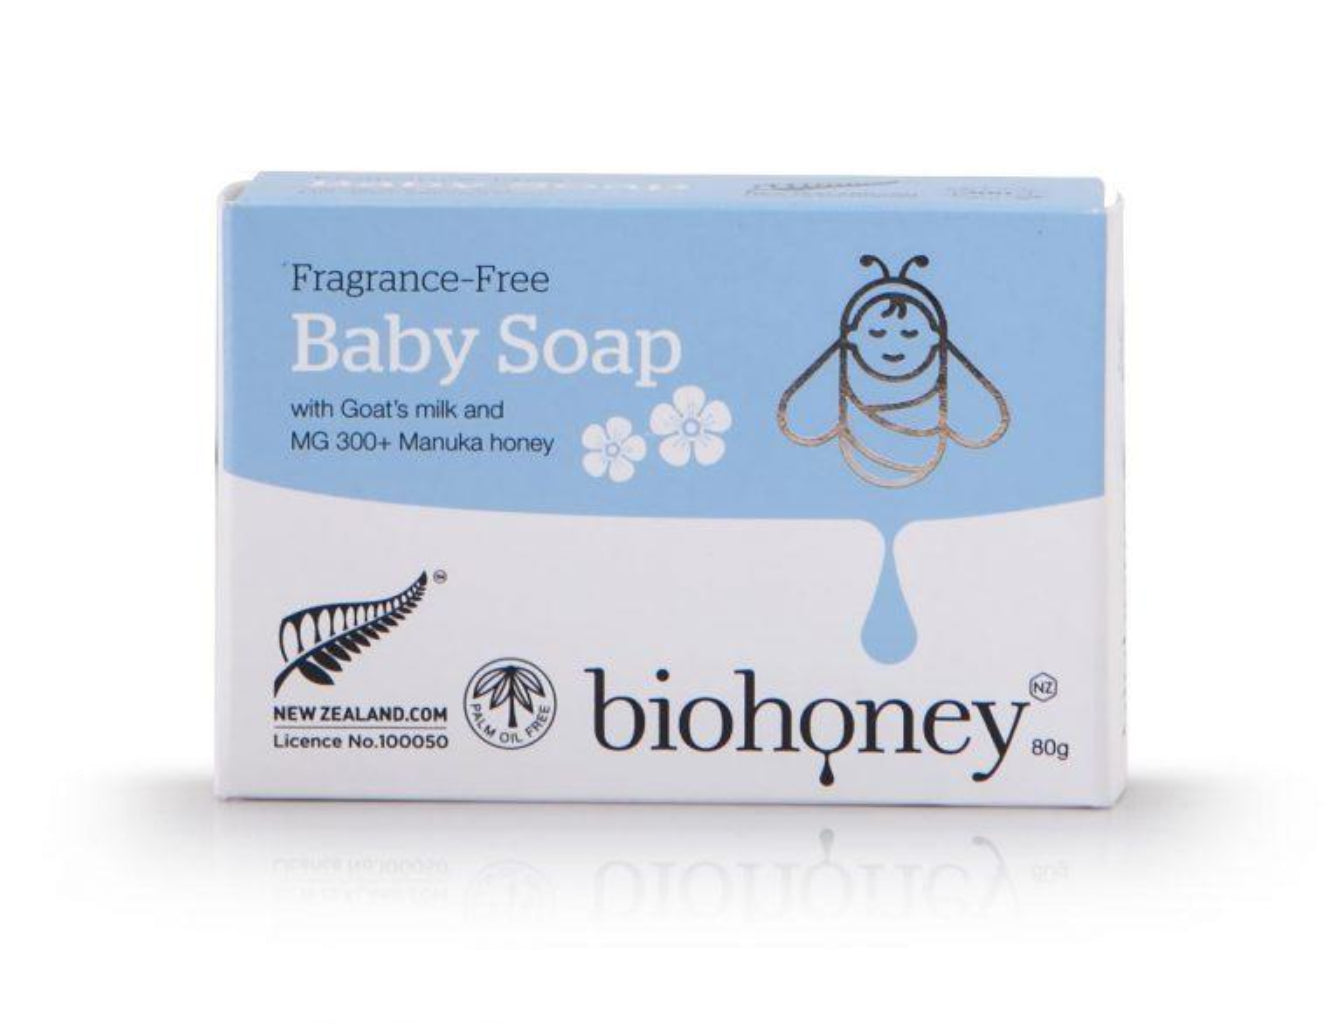 Fragrance-Free Baby Soap - Babies & Kids | Biohoney